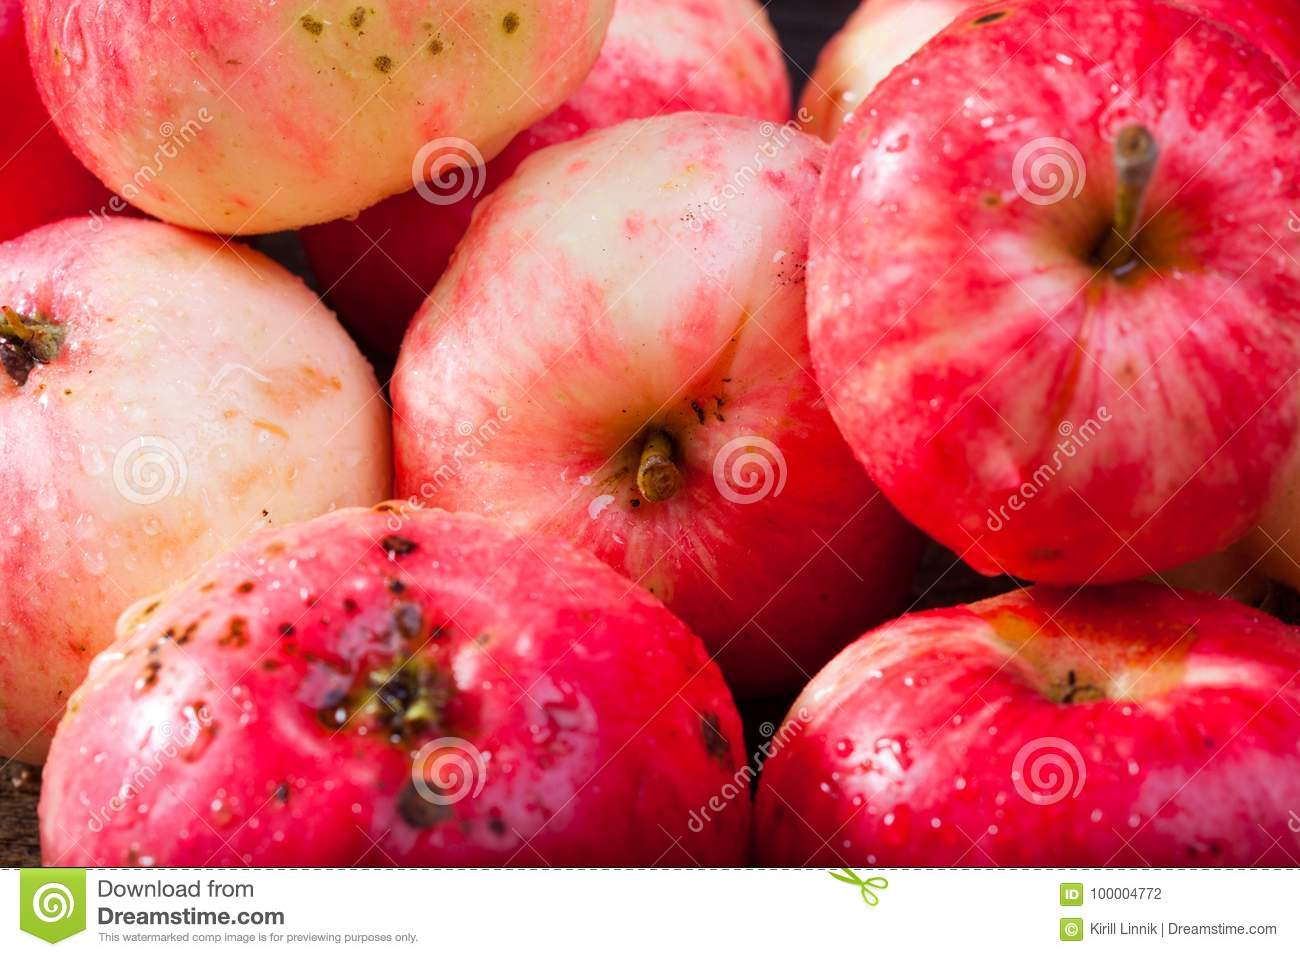 Download Red ripe apples stock photo. Image of ripe, diet, fruit - 100004772